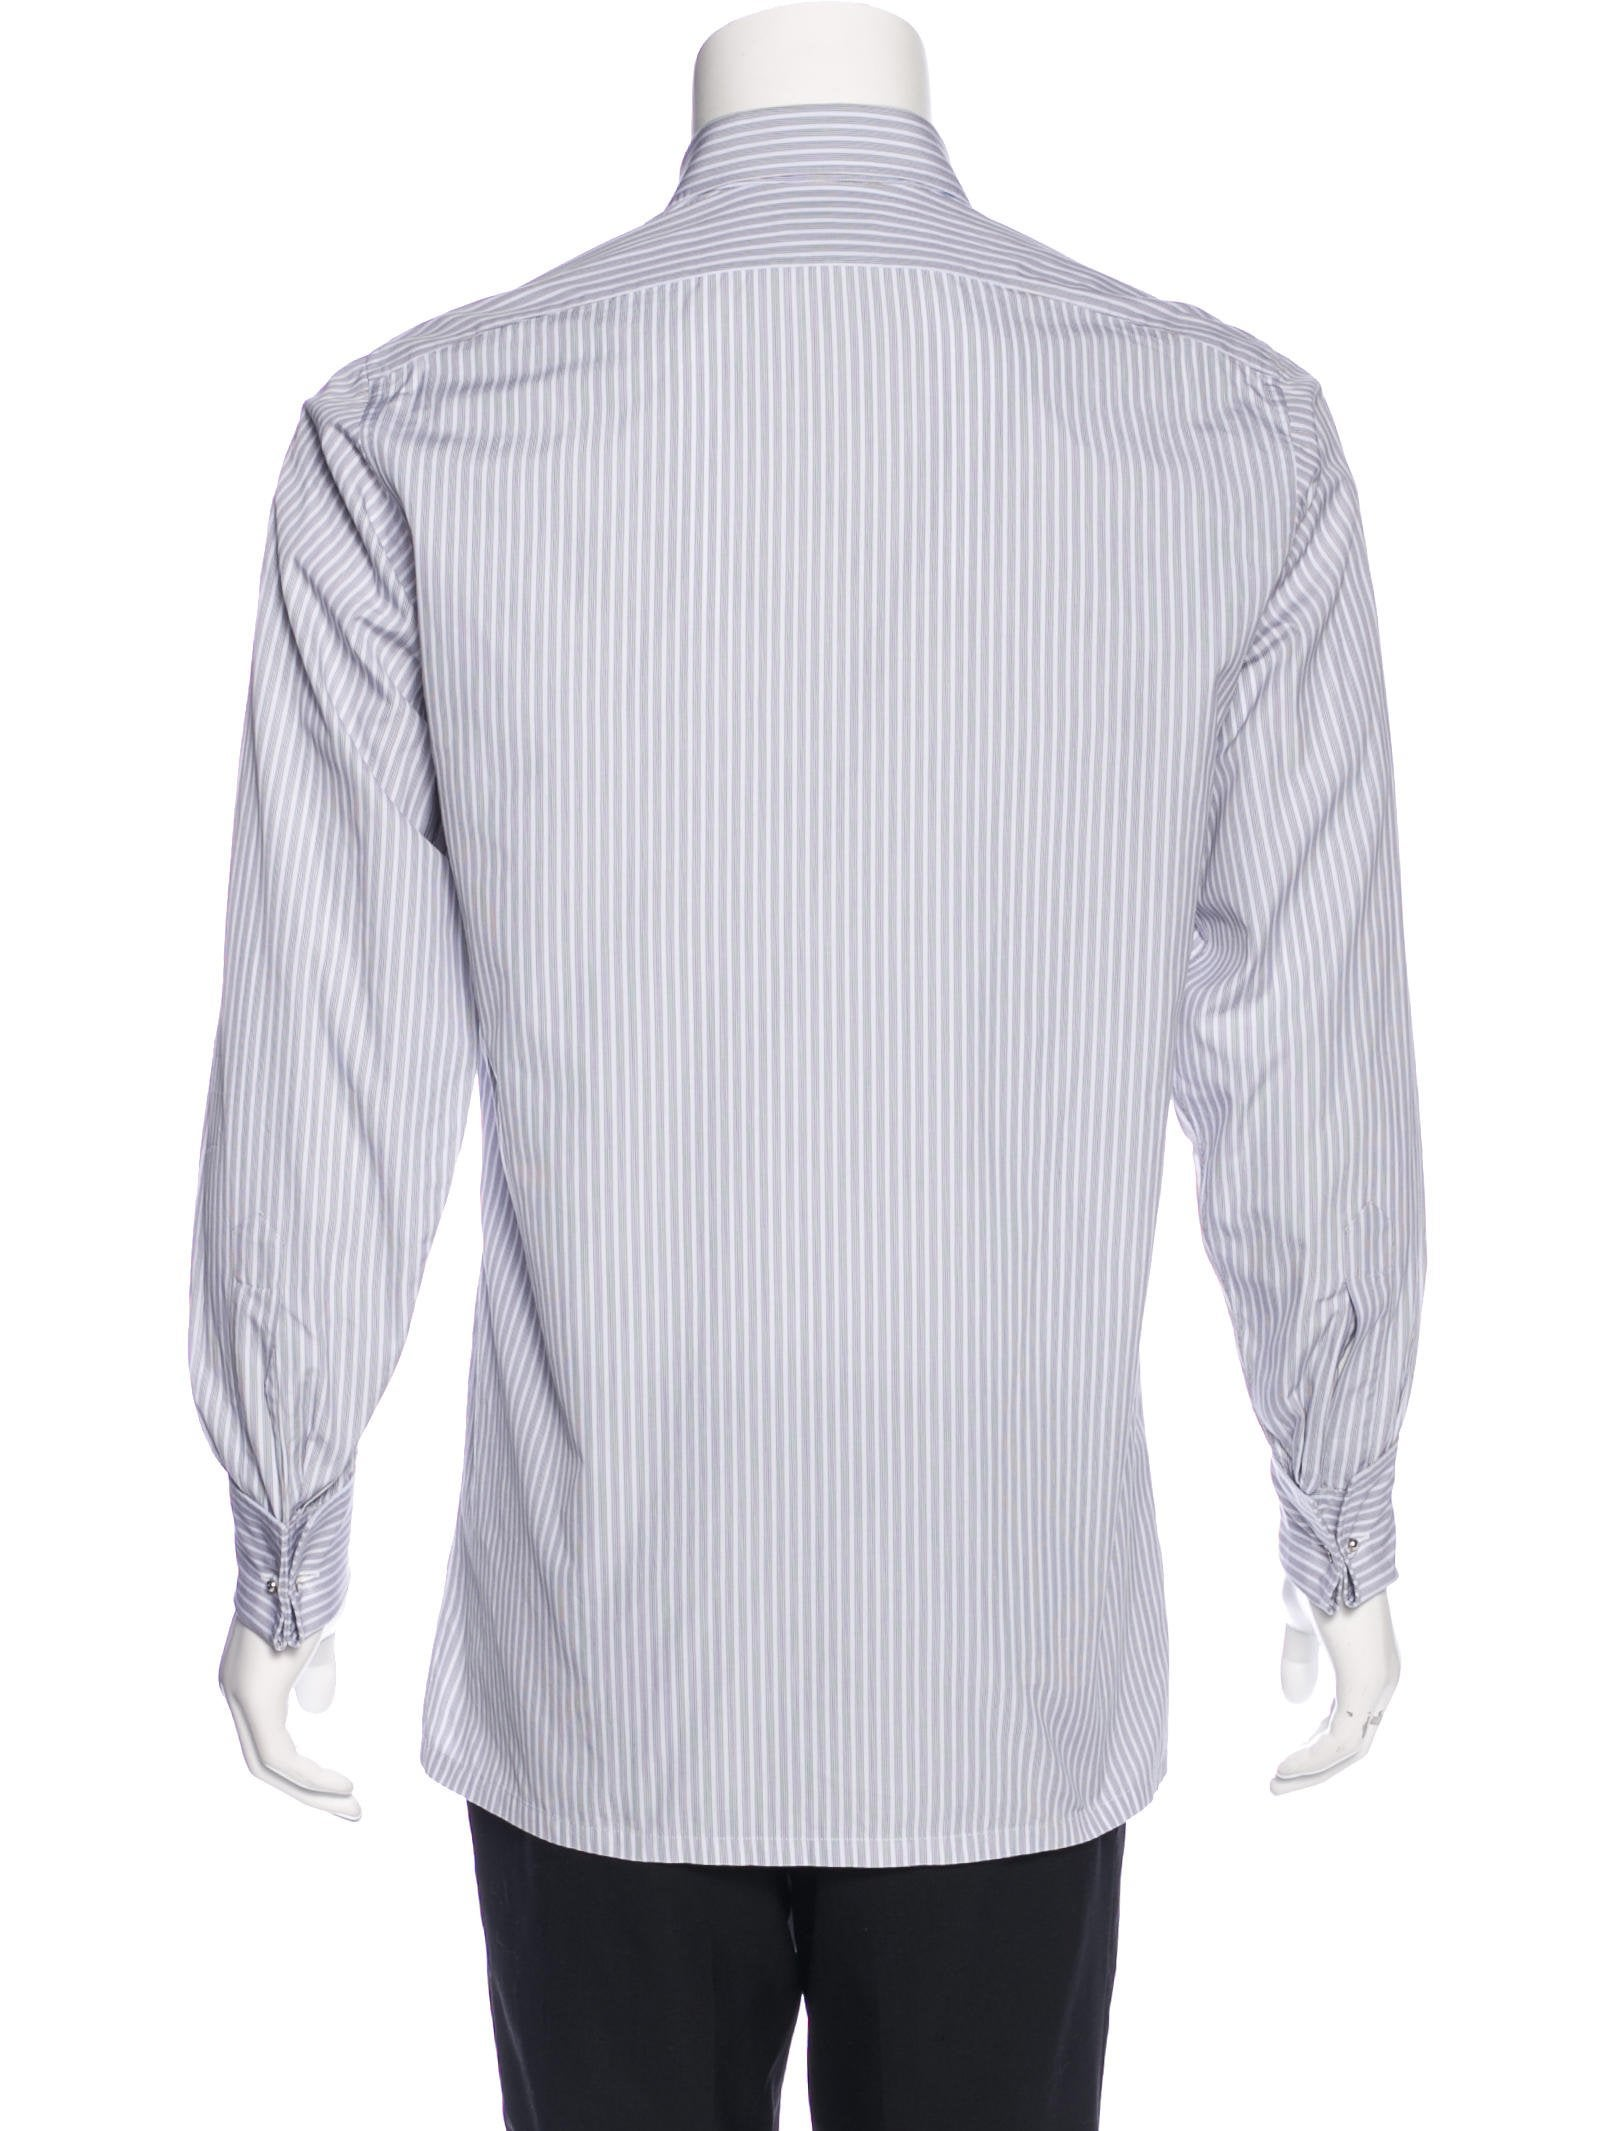 Charvet striped french cuff shirt clothing wchrv20591 for French cuff dress shirts for sale